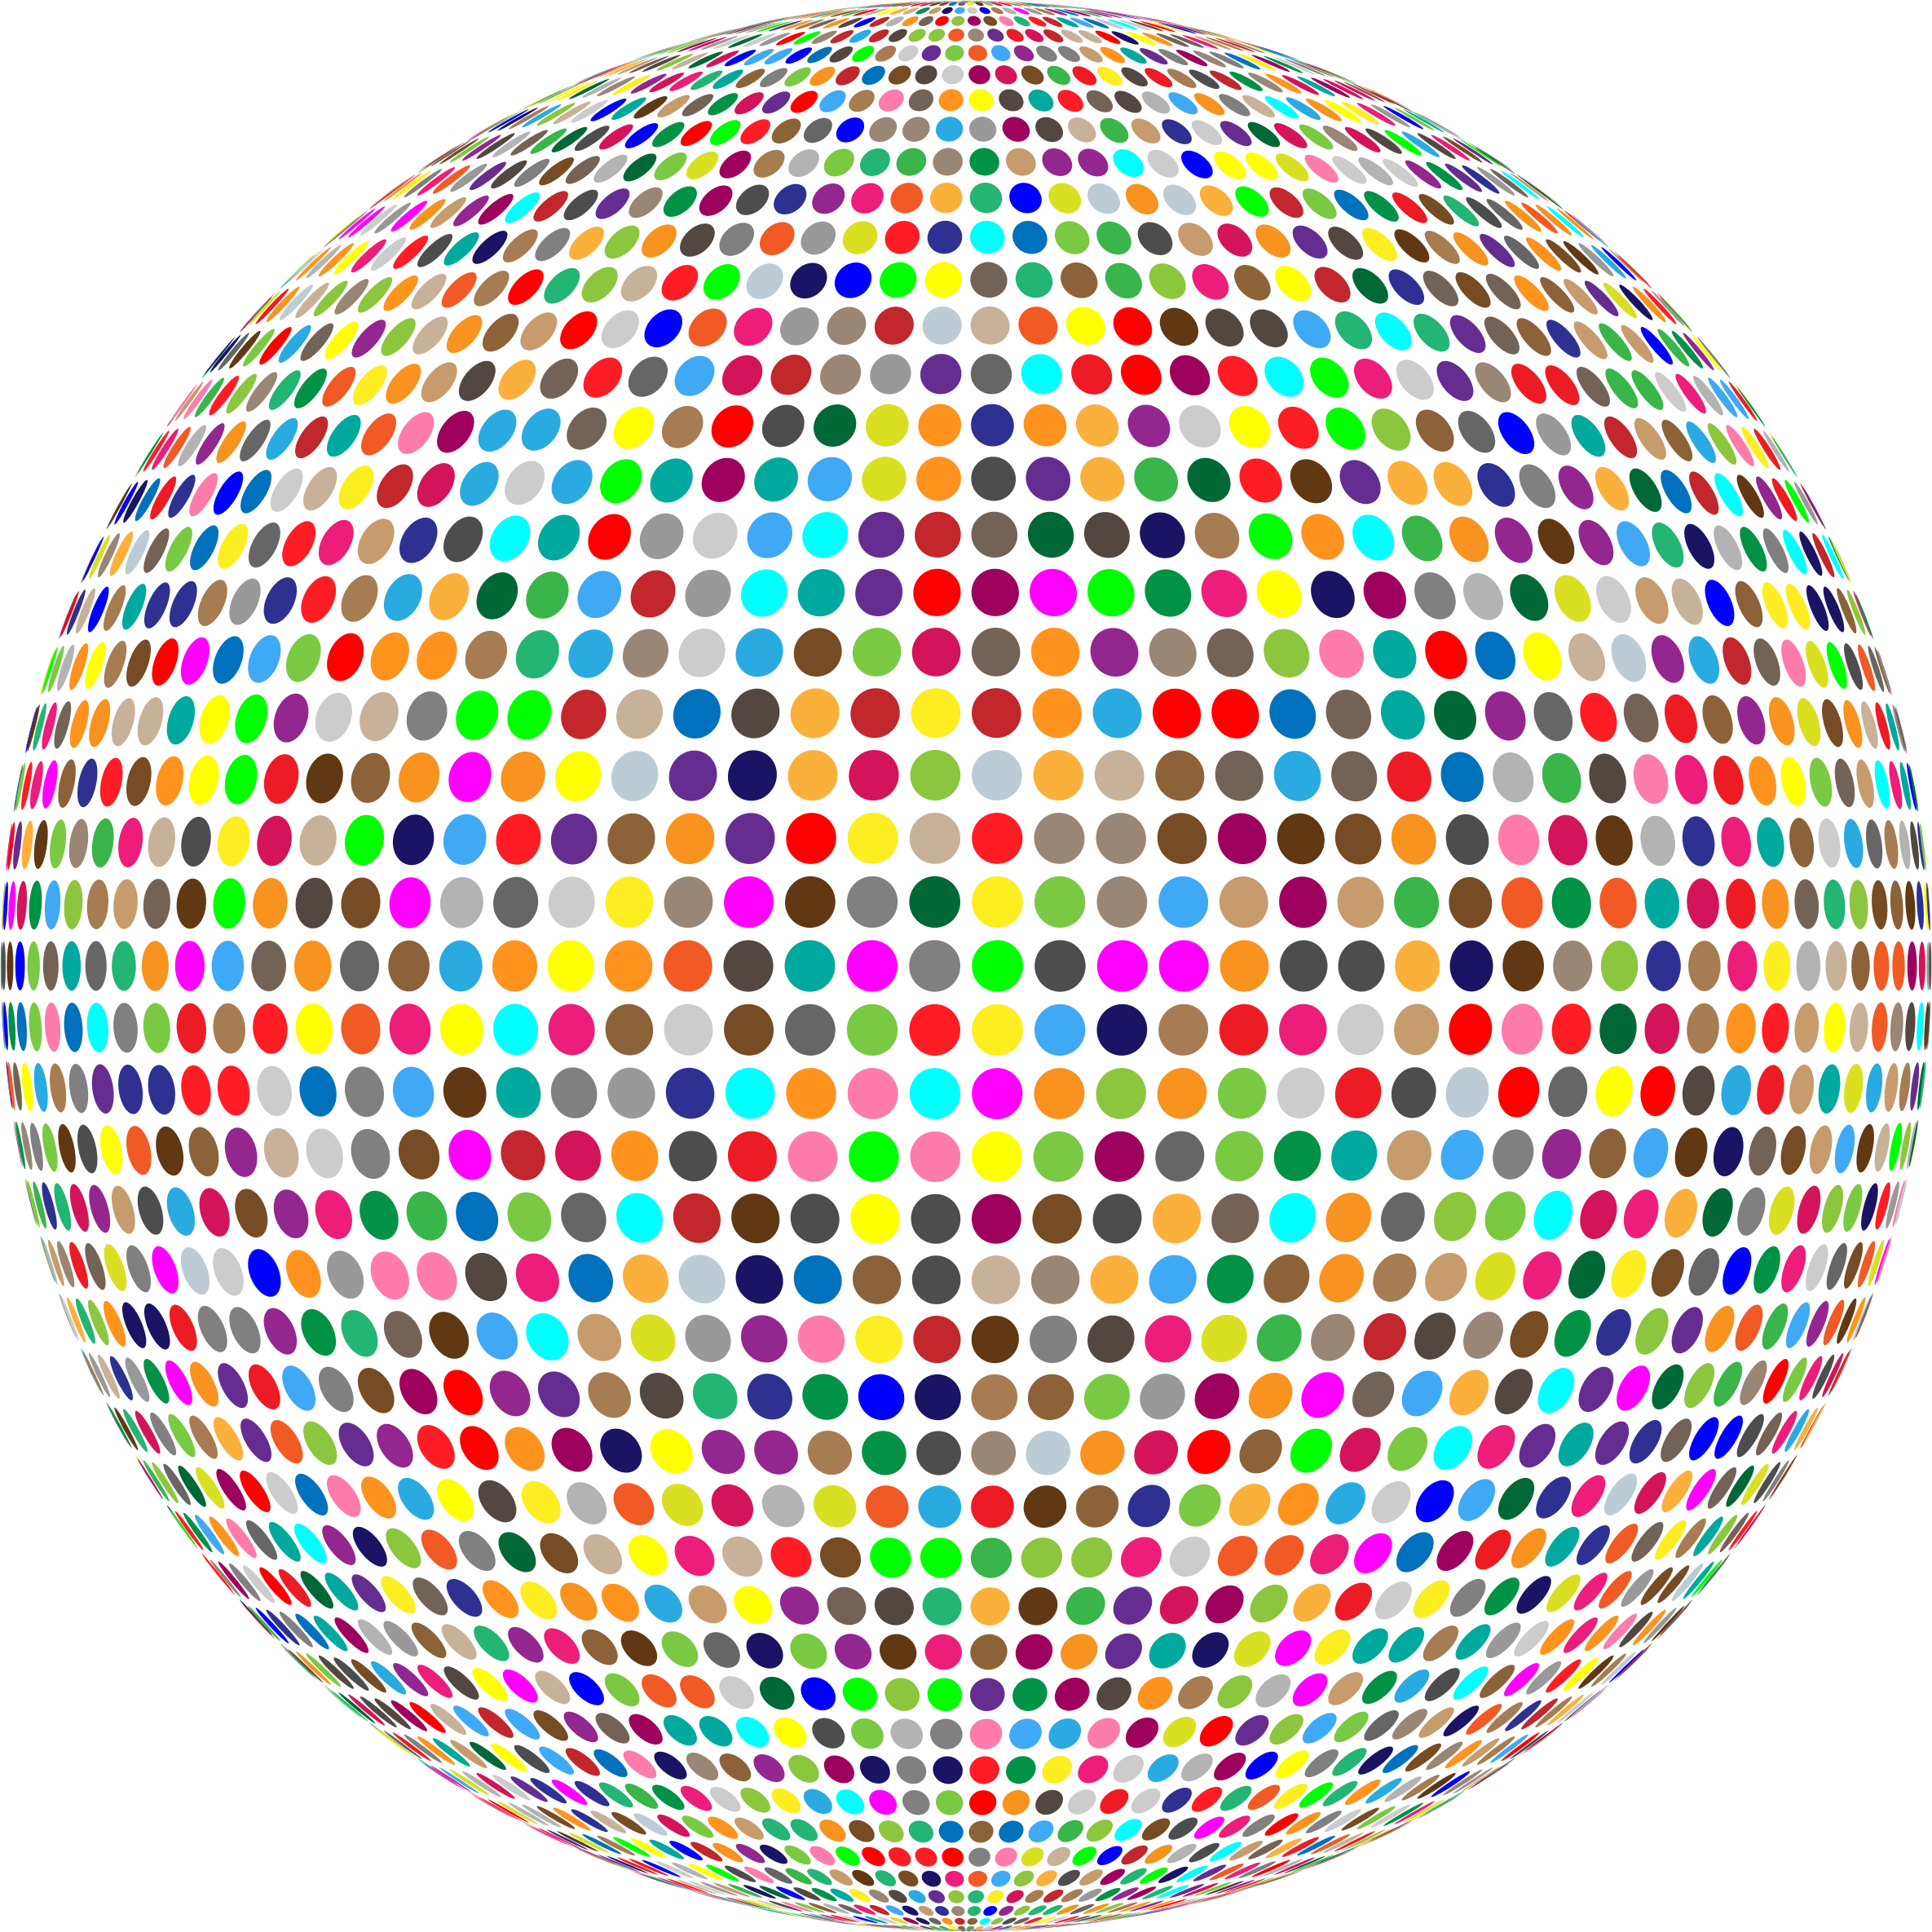 Clipart - Colorful High Density Dots Sphere